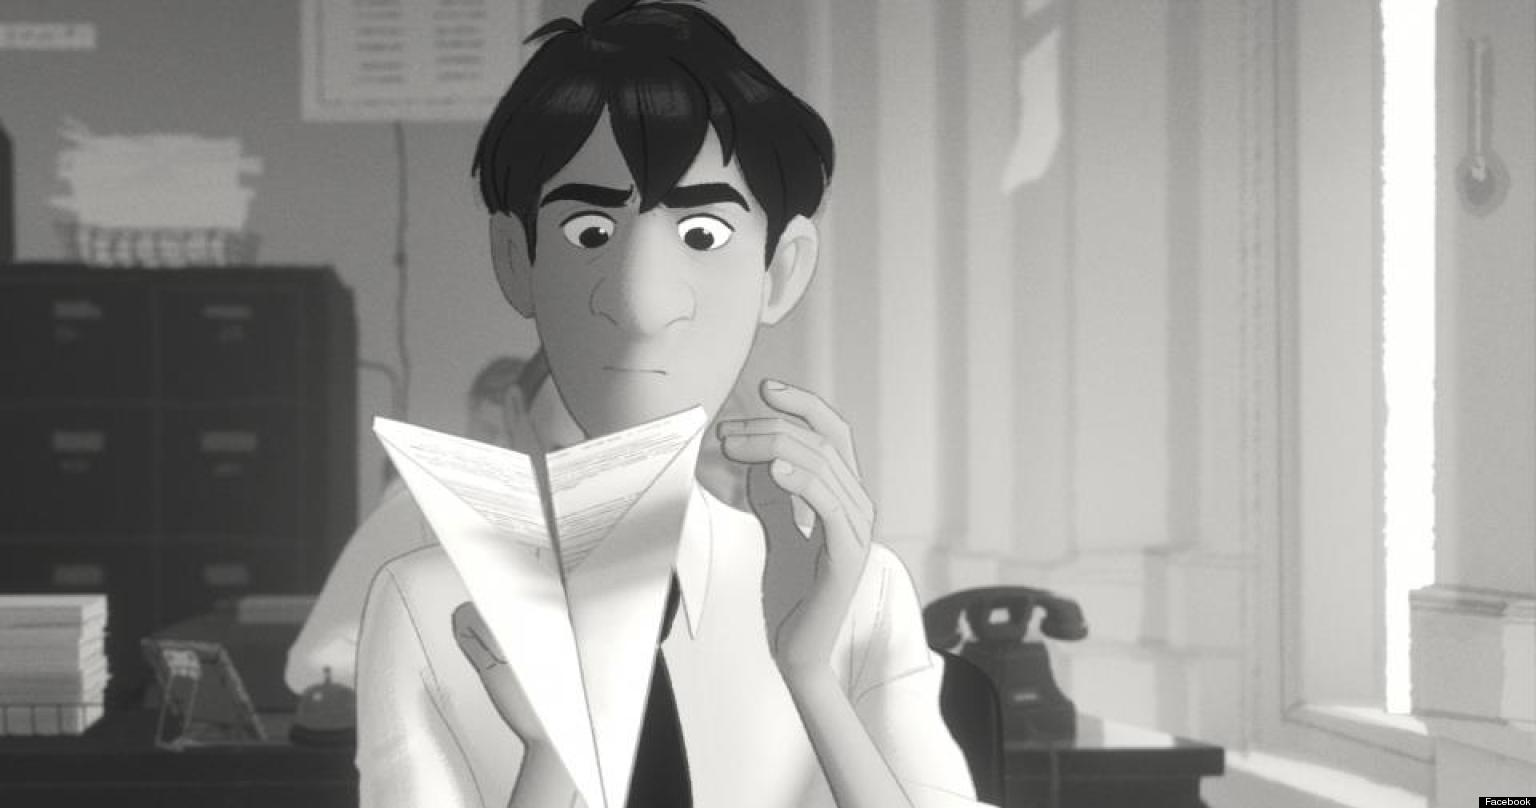 paperman  un cartoon di 6 minuti della disney in corsa per l u0026 39 oscar  foto  video